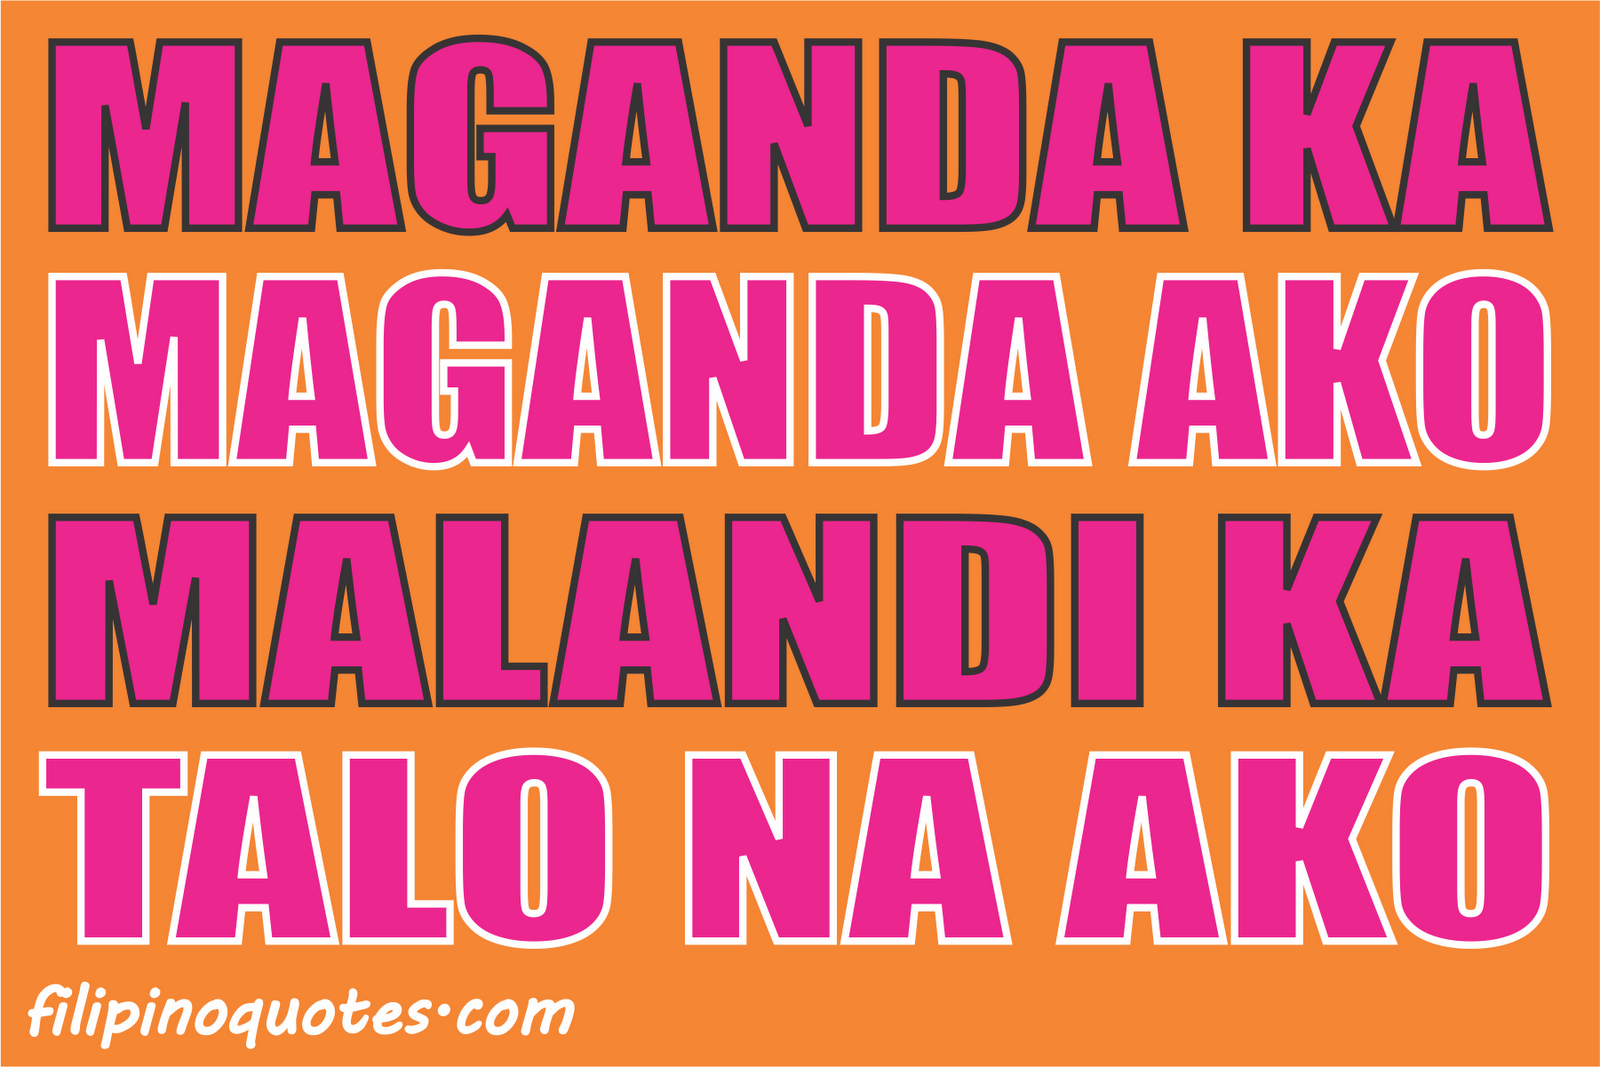 Bitter Quotes About Love Tagalog: Bitter Quotes In Tagalog (June 2012)